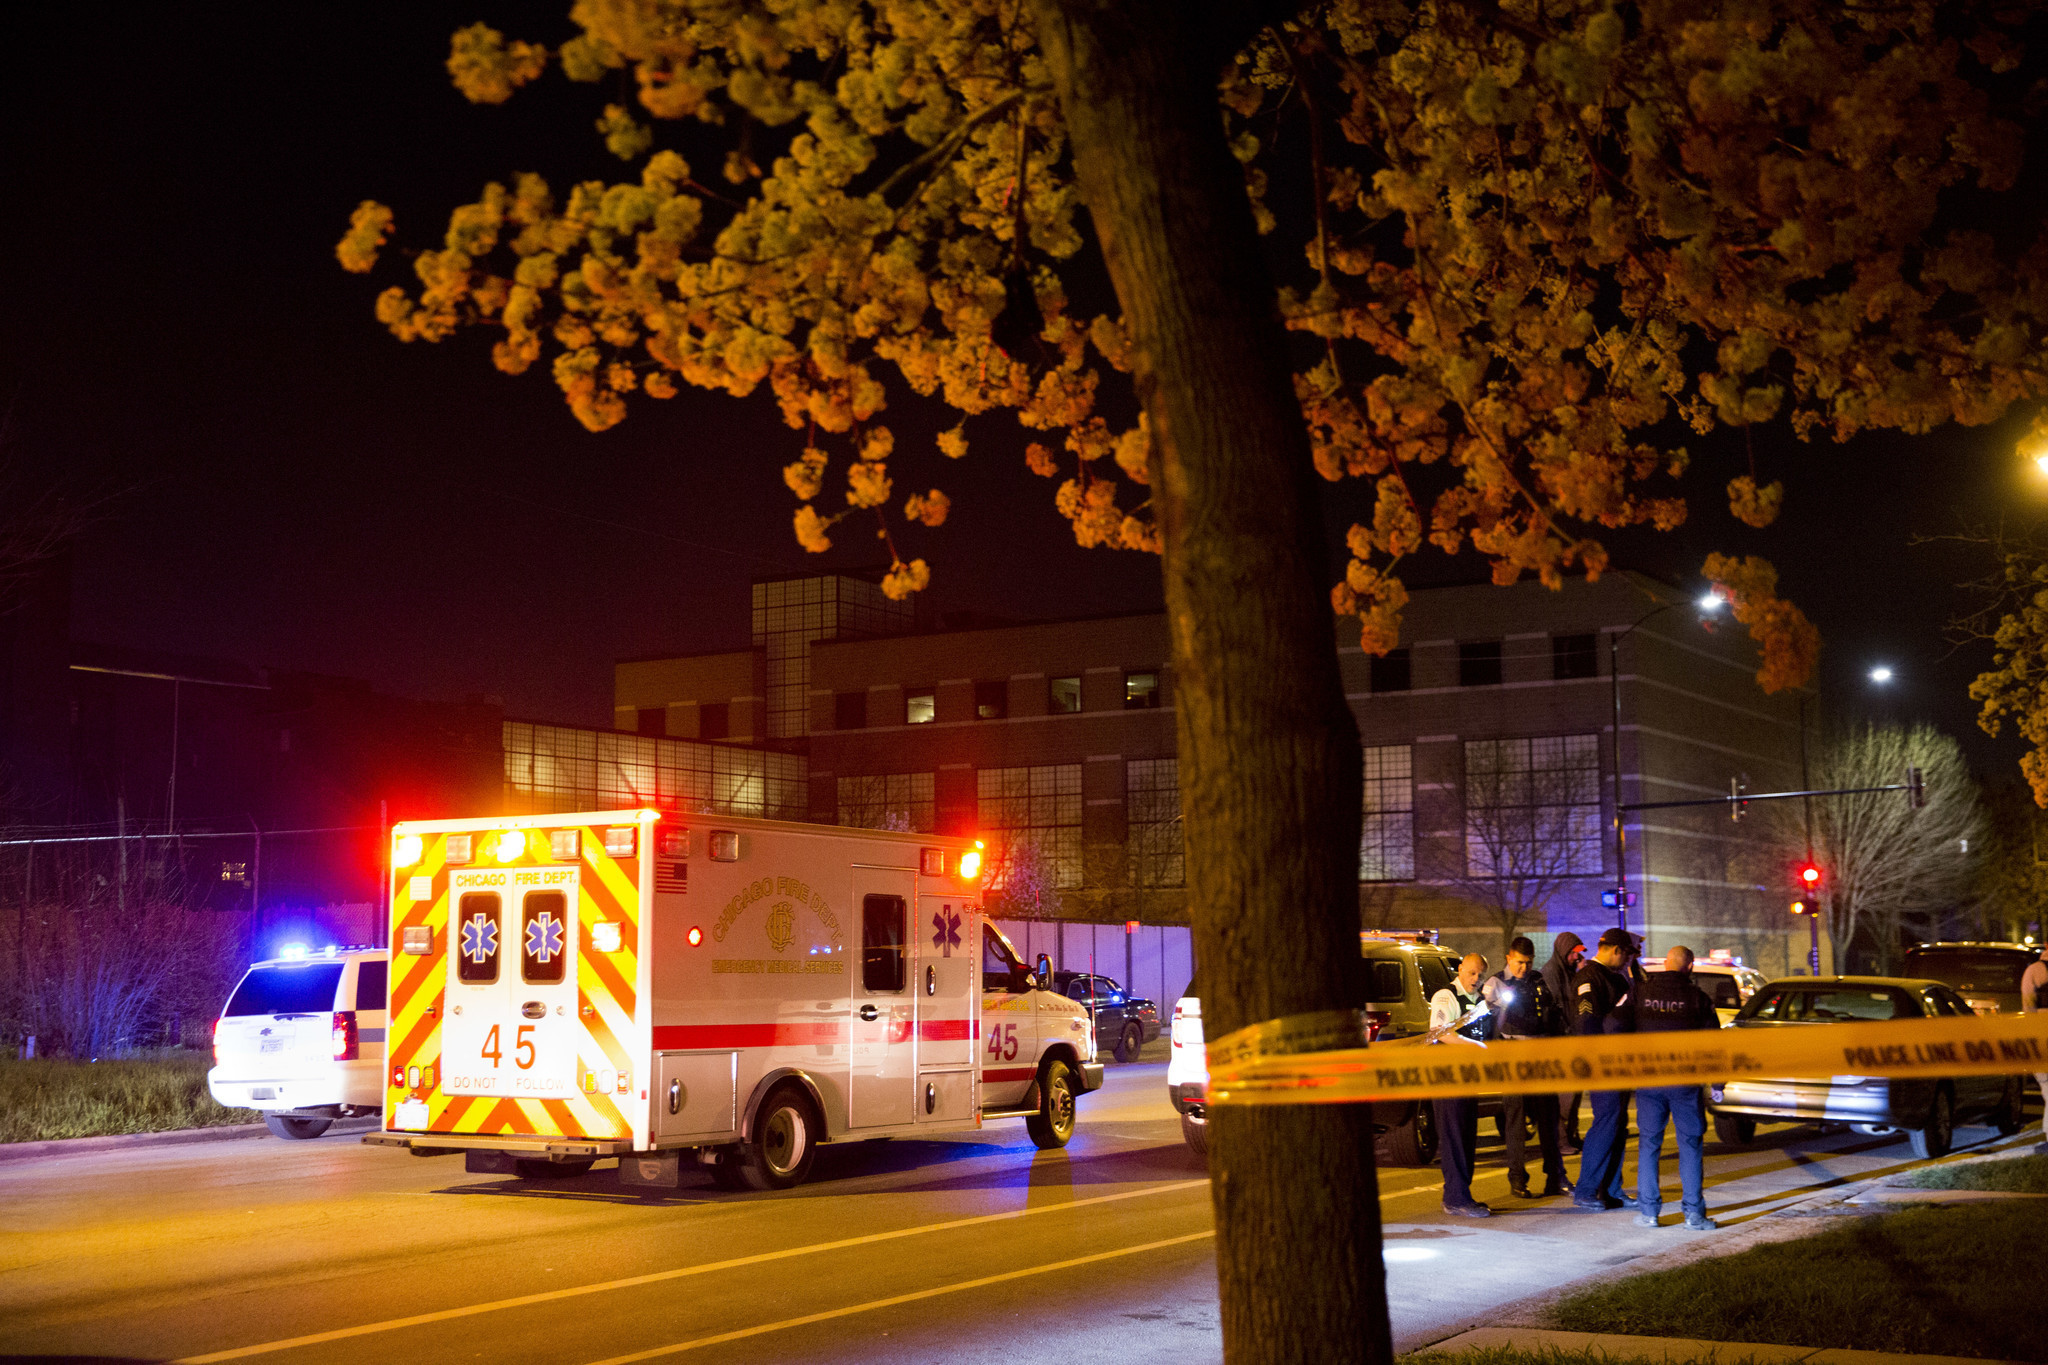 1 killed, 9 wounded in Chicago shootings over 14 hours - Chicago Tribune